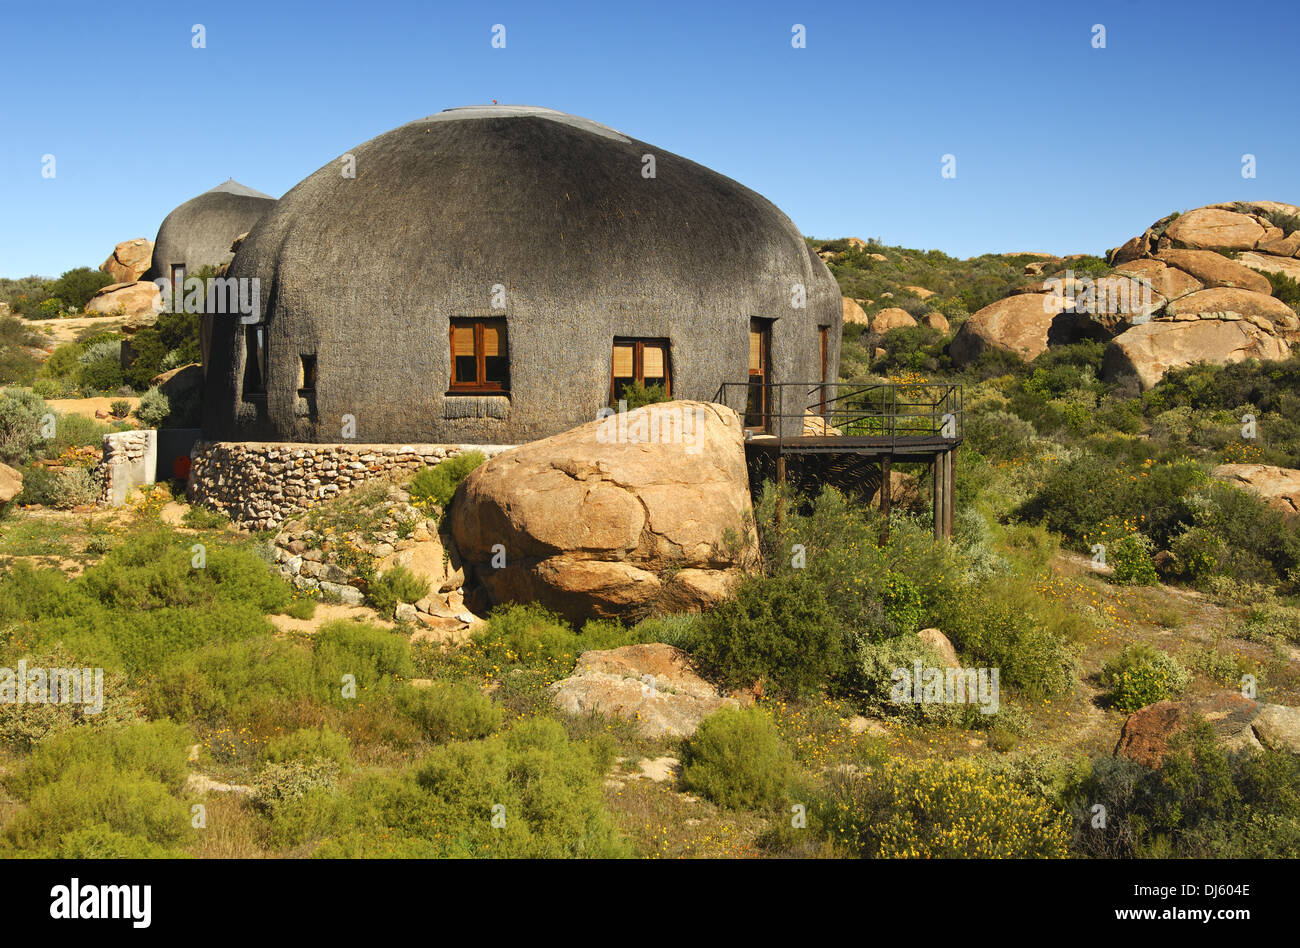 Namakwa Mountain Suite, Südafrika - Stock Image